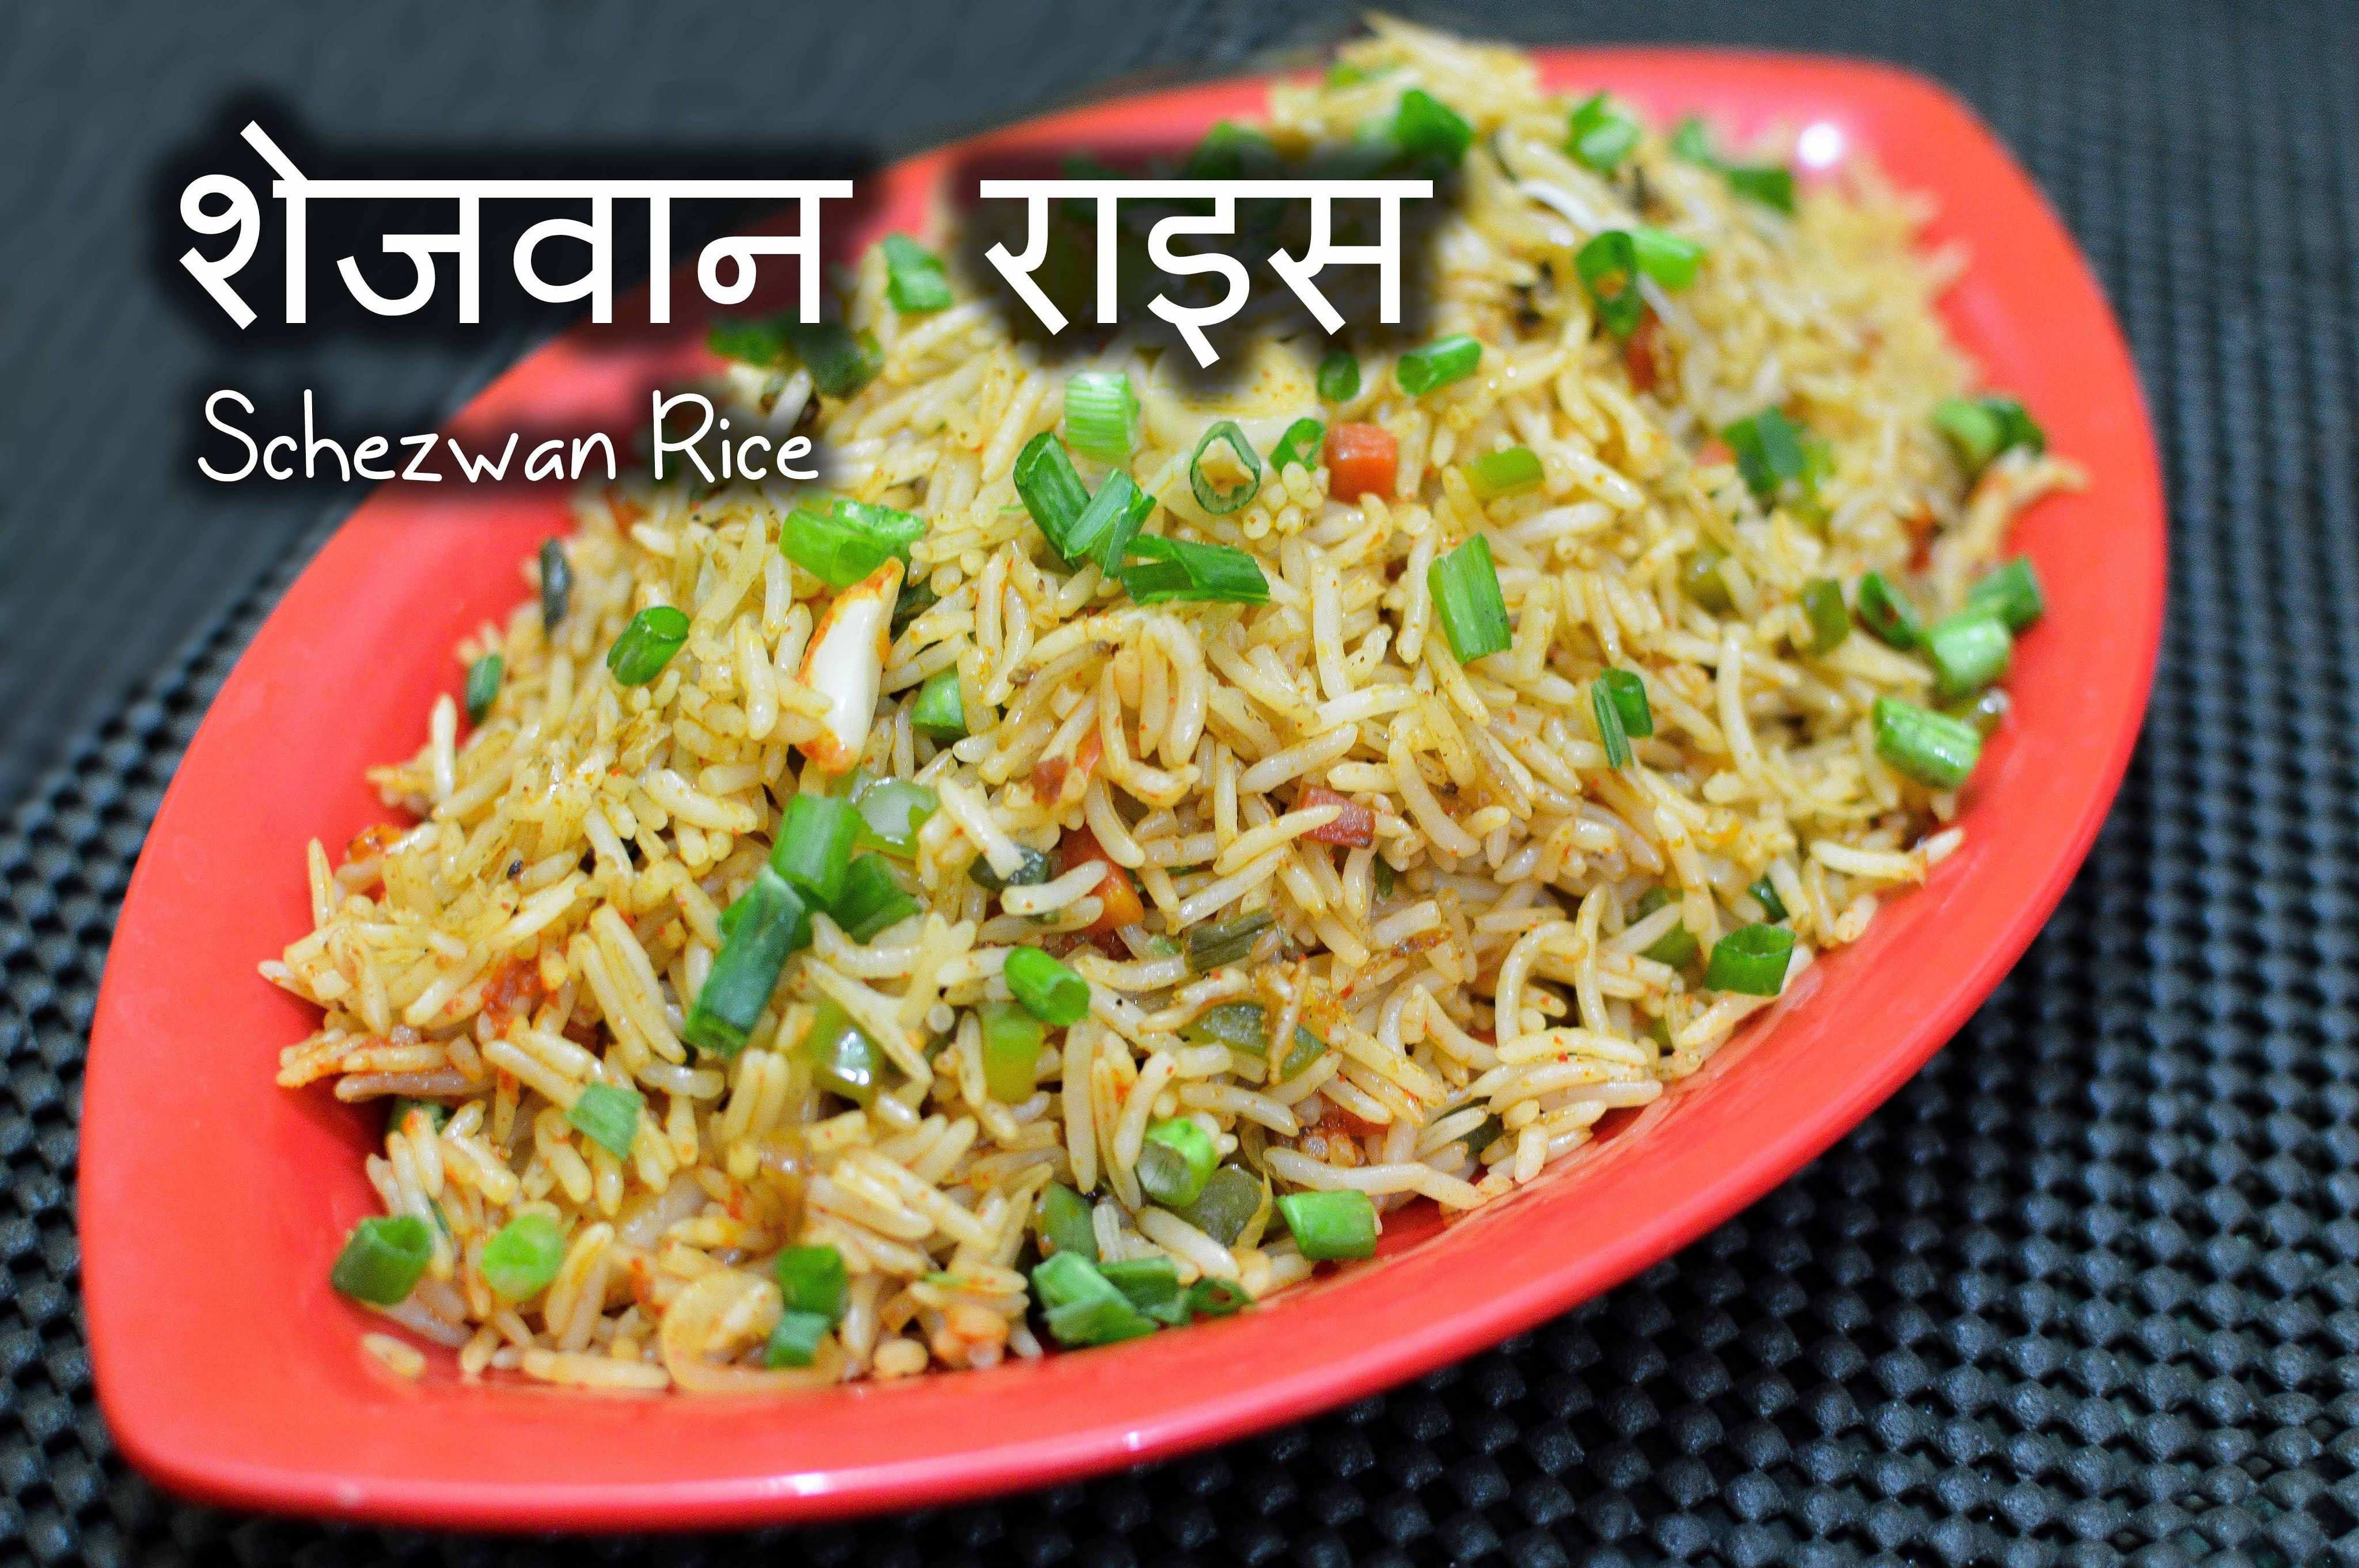 Schezwan fried rice chinese schezwan rice simple recipe hindi video food forumfinder Image collections